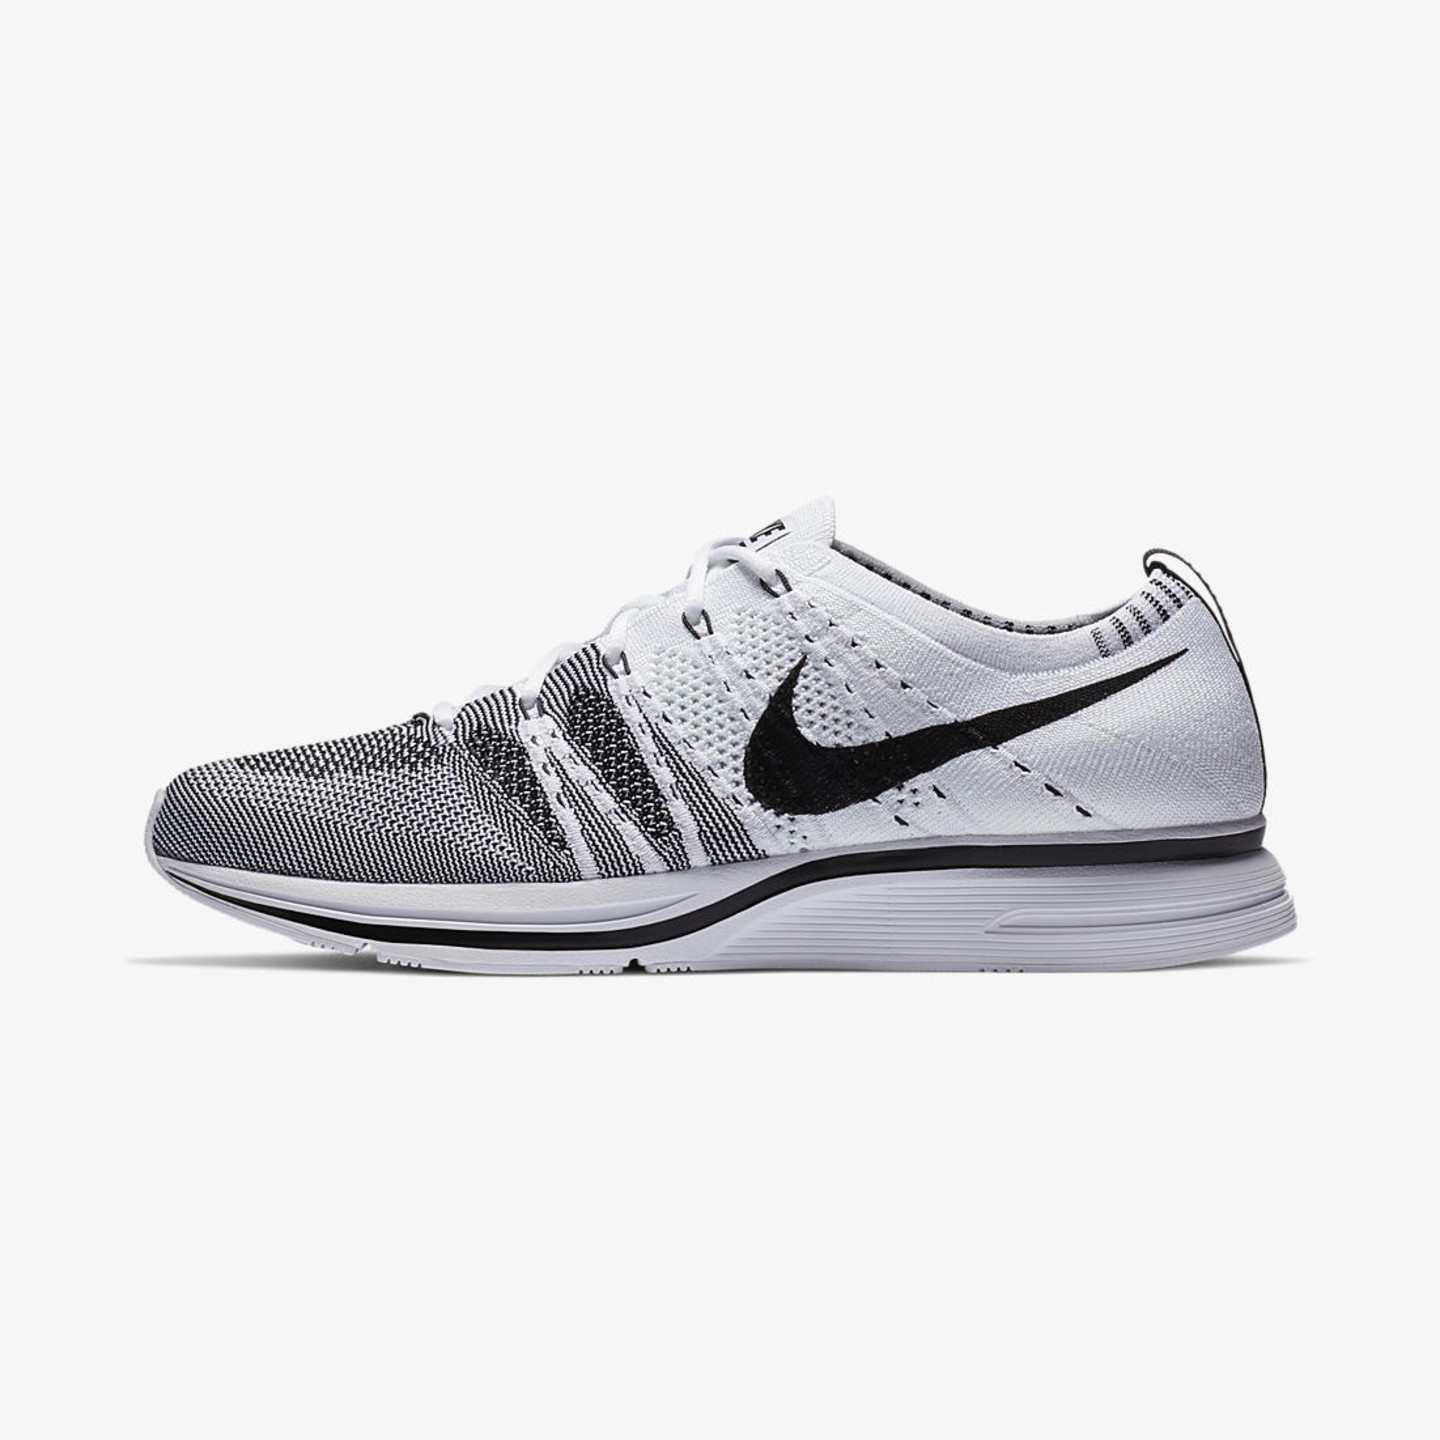 Nike Flyknit Trainer OG White / Black AH8396-100